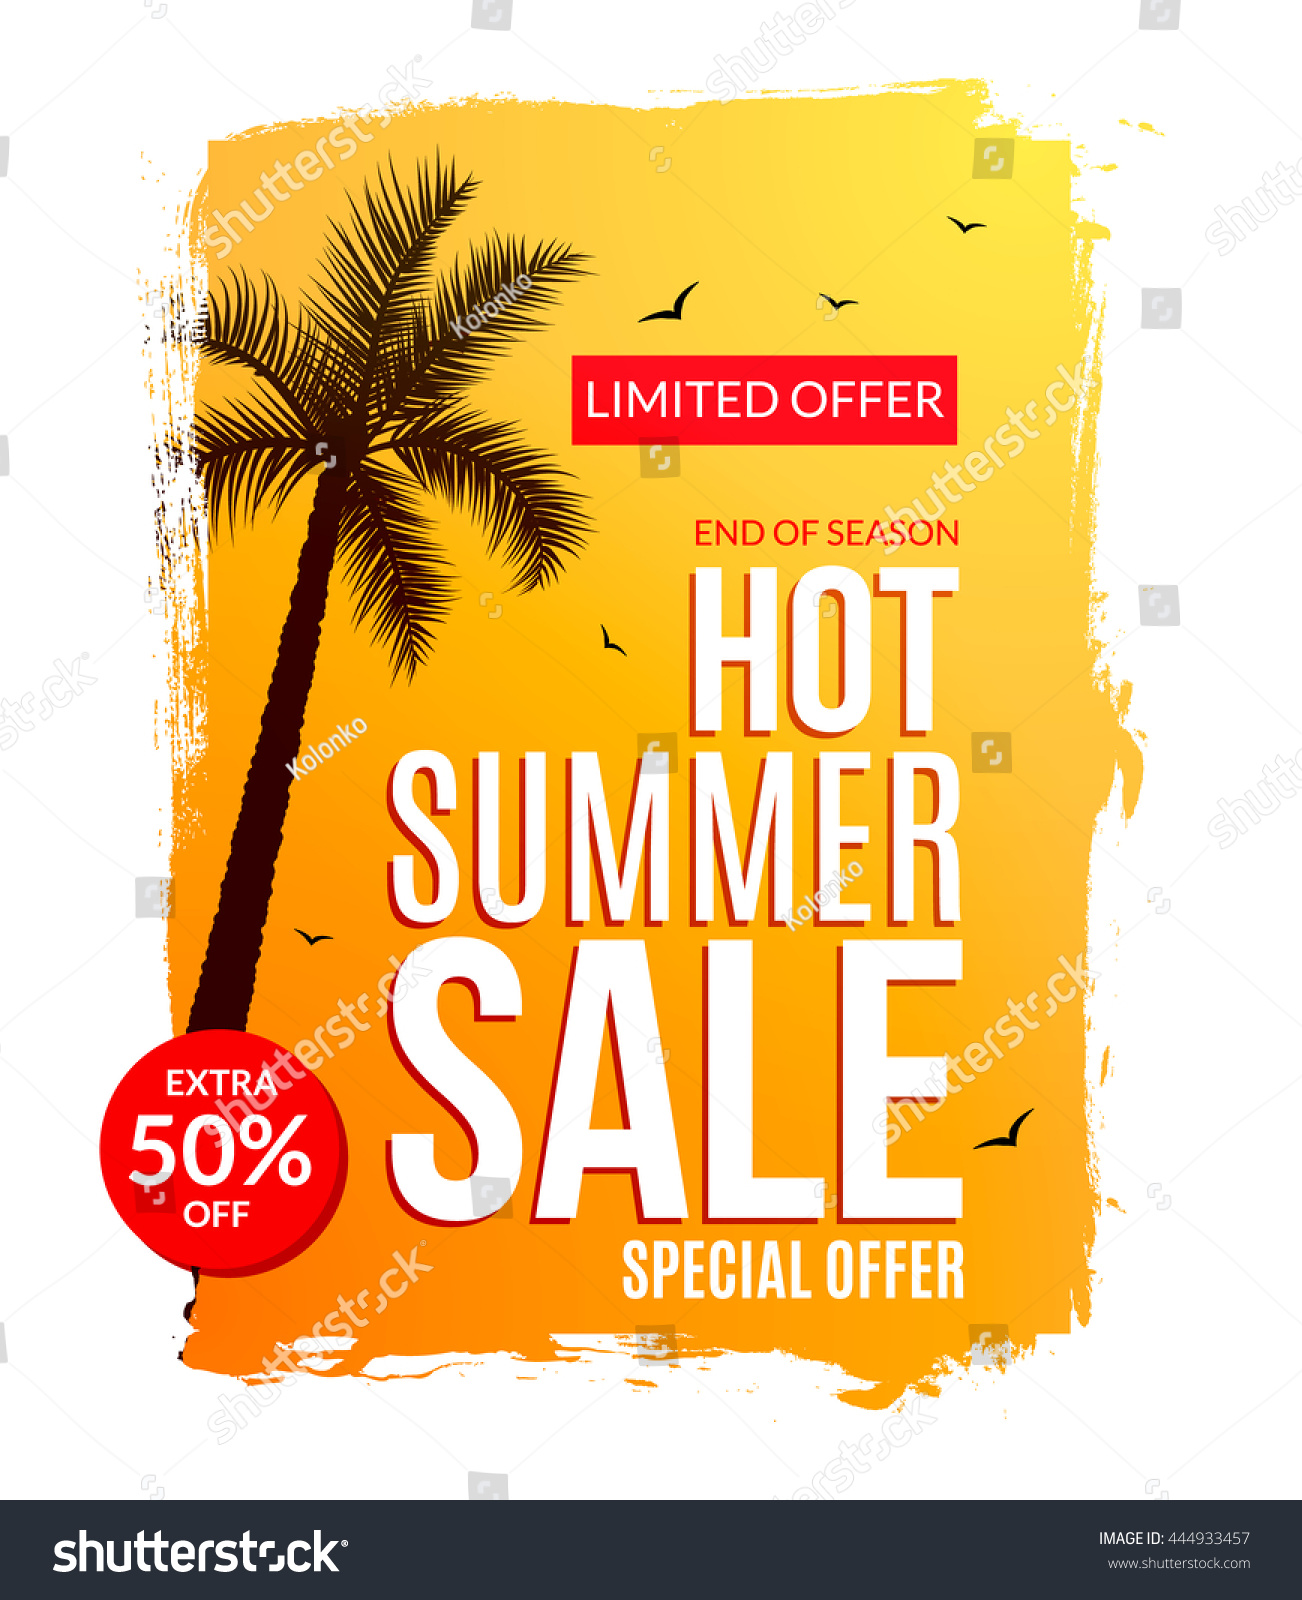 Poster design price - Summer Hot Sale Discount Template Poster Summer Sale Flyer Special Offer Half Price Deal